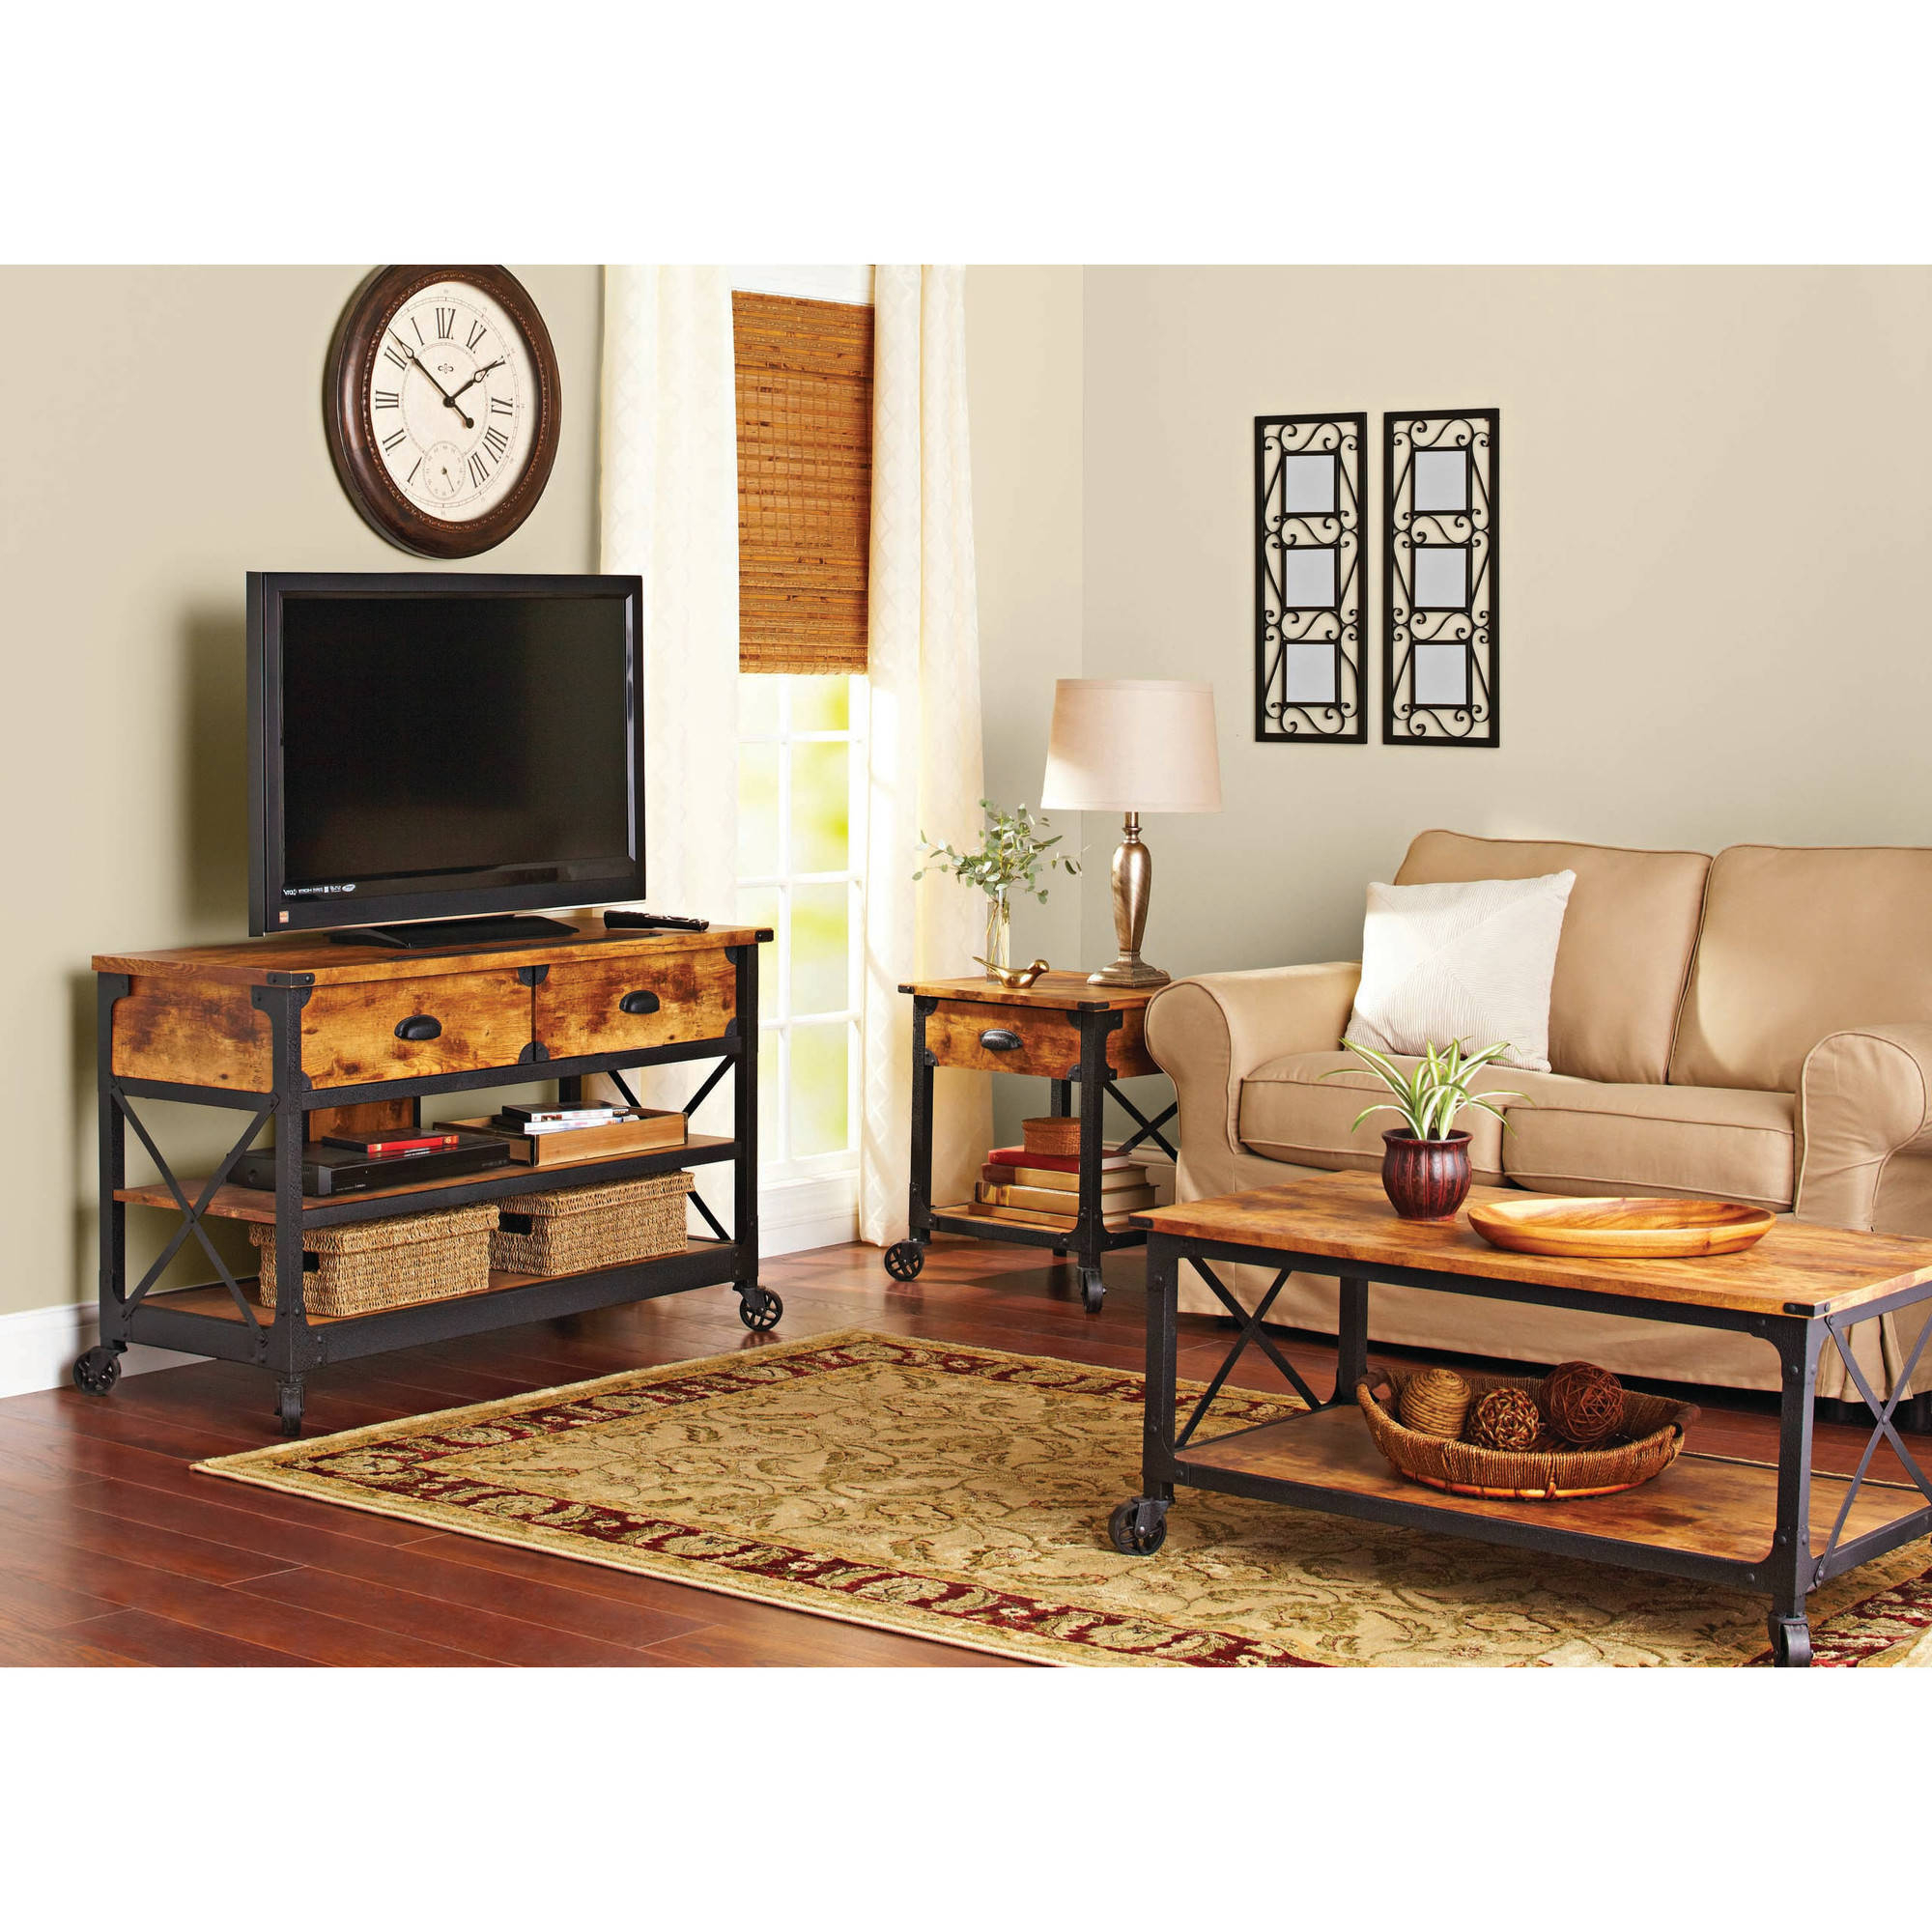 Tv Stands: Best Contemporary Tv Stand With Baskets Design Ideas Tv With Regard To Most Popular Tv Stands With Baskets (View 7 of 20)